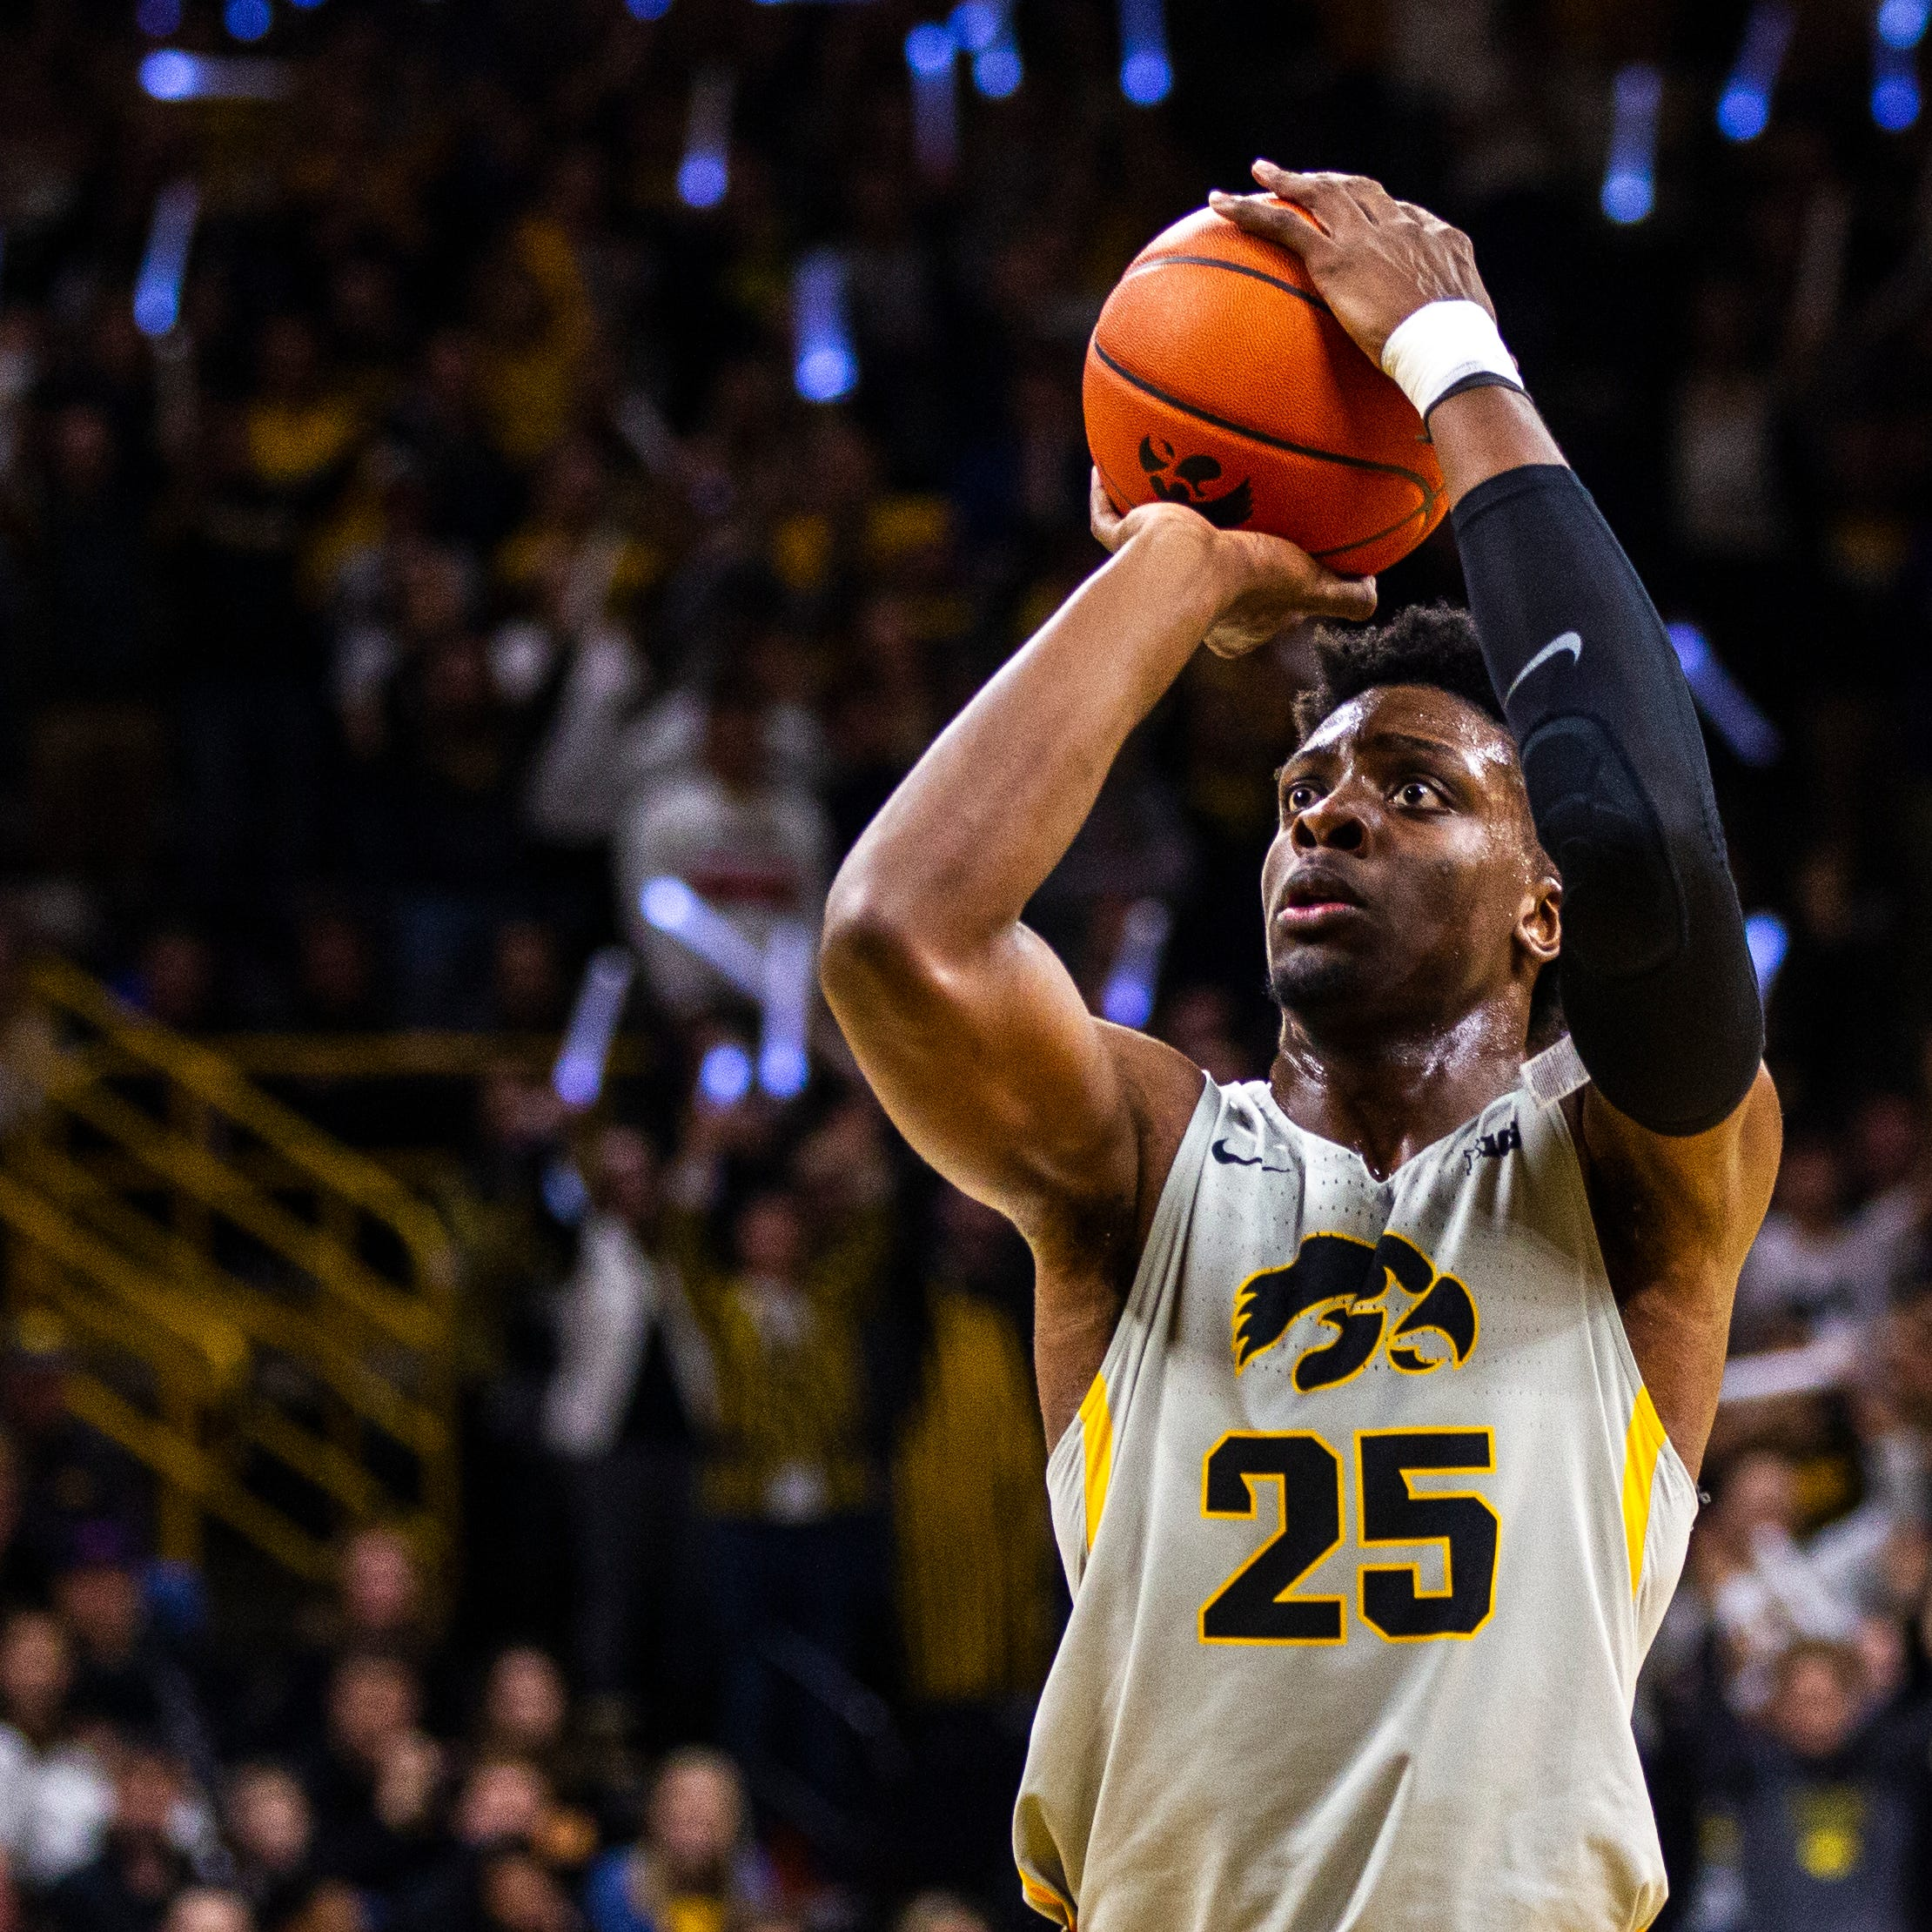 Tyler Cook will get his Big Dance moment, but he also must help the Hawkeyes rediscover their mojo